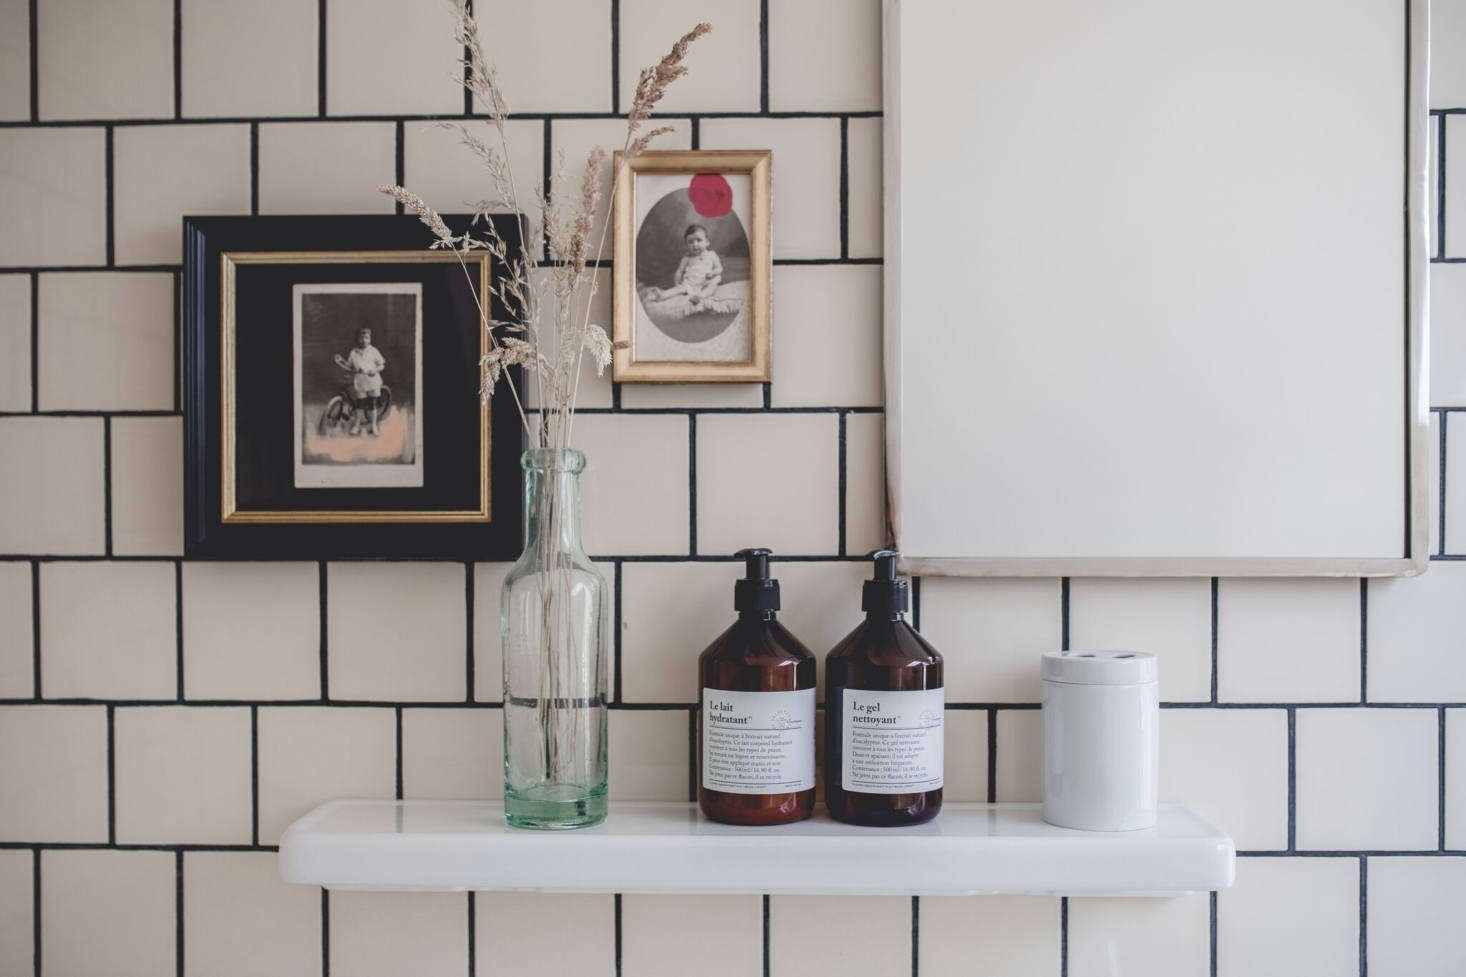 You can never go wrong by adding a few vintage finds. Here, small vintage photographs, sourced at a flea market, add personality to a bathroom. Photograph by Nomades, courtesy of Le Barn, from Le Barn: Paddock Living at a Rustic-Chic Retreat Outside of Paris.